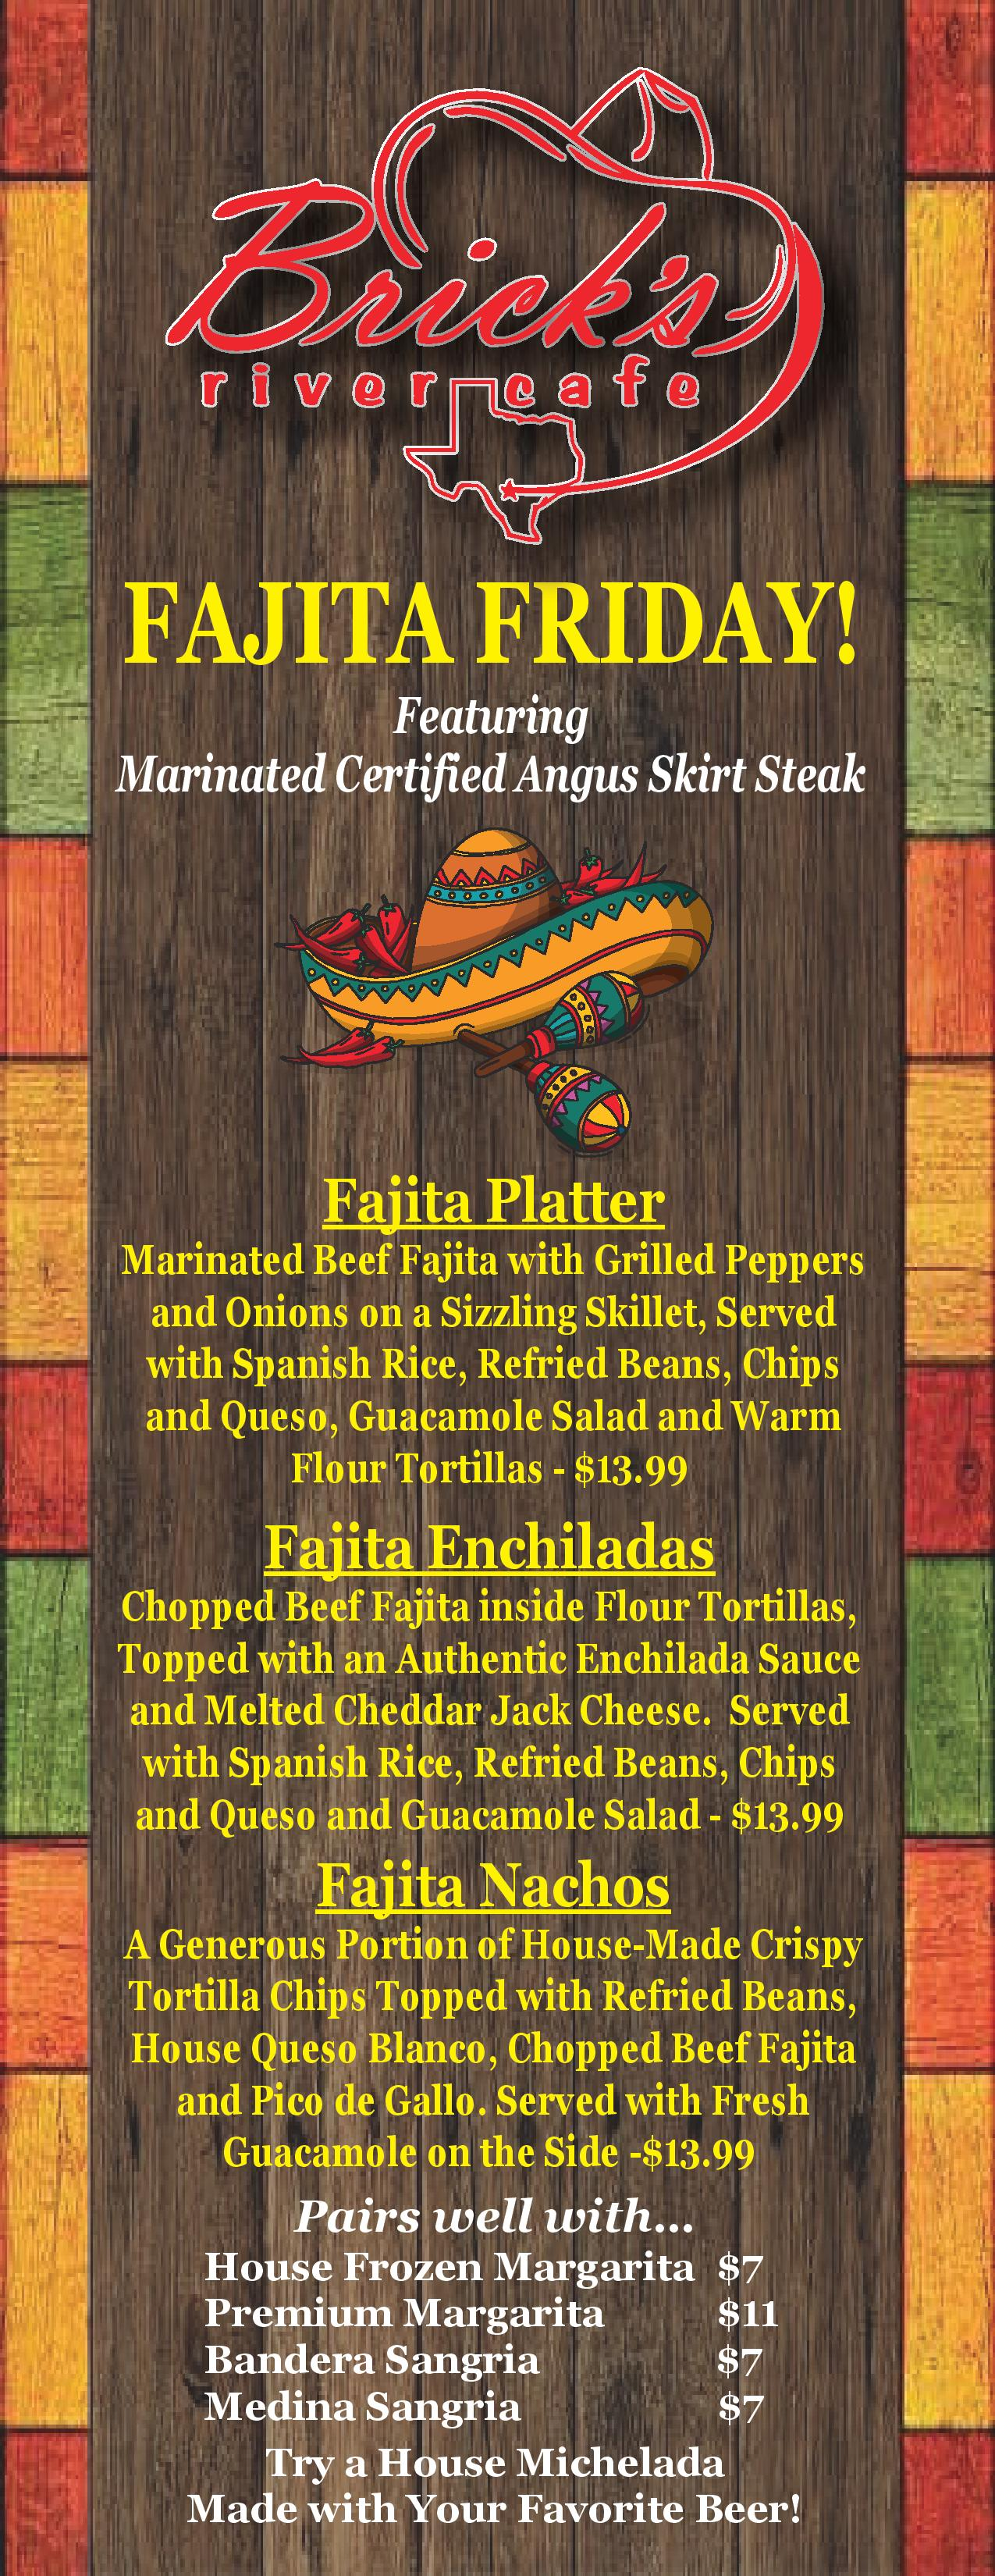 fajita Friday! featuring marinated certified angus skirt steak. fajita platter marinated beef fajita with grilled peppers and onions on a sizzling skillet, served with spanish rice, refried beans, chips and queso, guacamole salad and warm flour tortillas - $13.99. fajita enchiladas chopped beef fajita inside flour tortillas, topped with an authentic enchilada sauce and melted cheddar jack cheese. served with spanish rice, refried beans, chips and queso and guacamole salad - $13.99. fajita nachos a generous portion of house-made crispy tortilla chips topped with refried beans, house queso blanco, chopped beef fajita and pico de gallo. served with fresh guacamole on the side - $13.99. pairs well with... house frozen margarita $7 premium margarita $11 bandera sangria $7 medina sangria $7 try a house michelada made with your favorite beer!